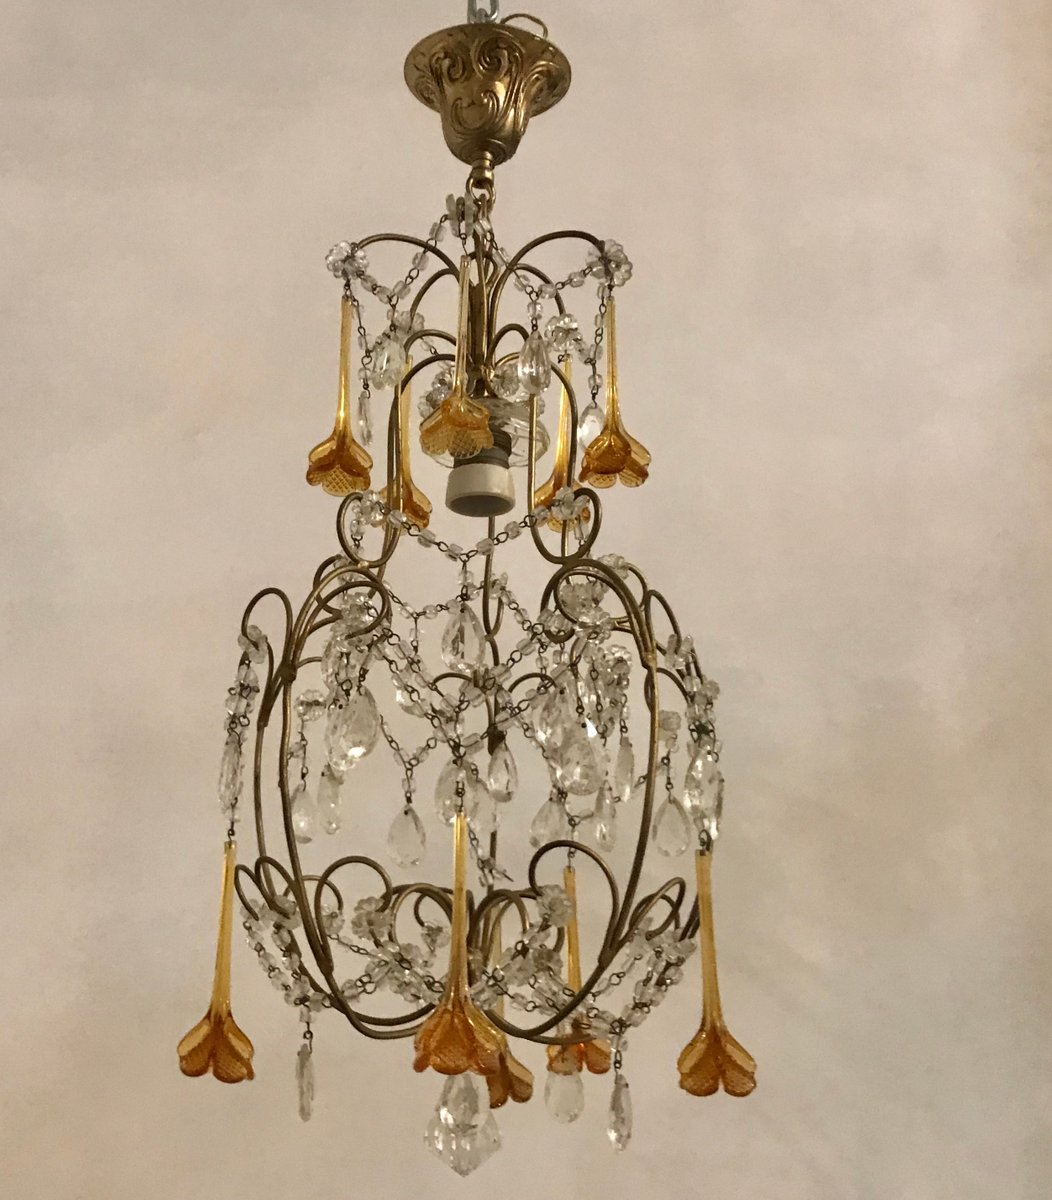 Murano Chandelier Nz: Vintage Crystal & Murano Chandelier For Sale At Pamono